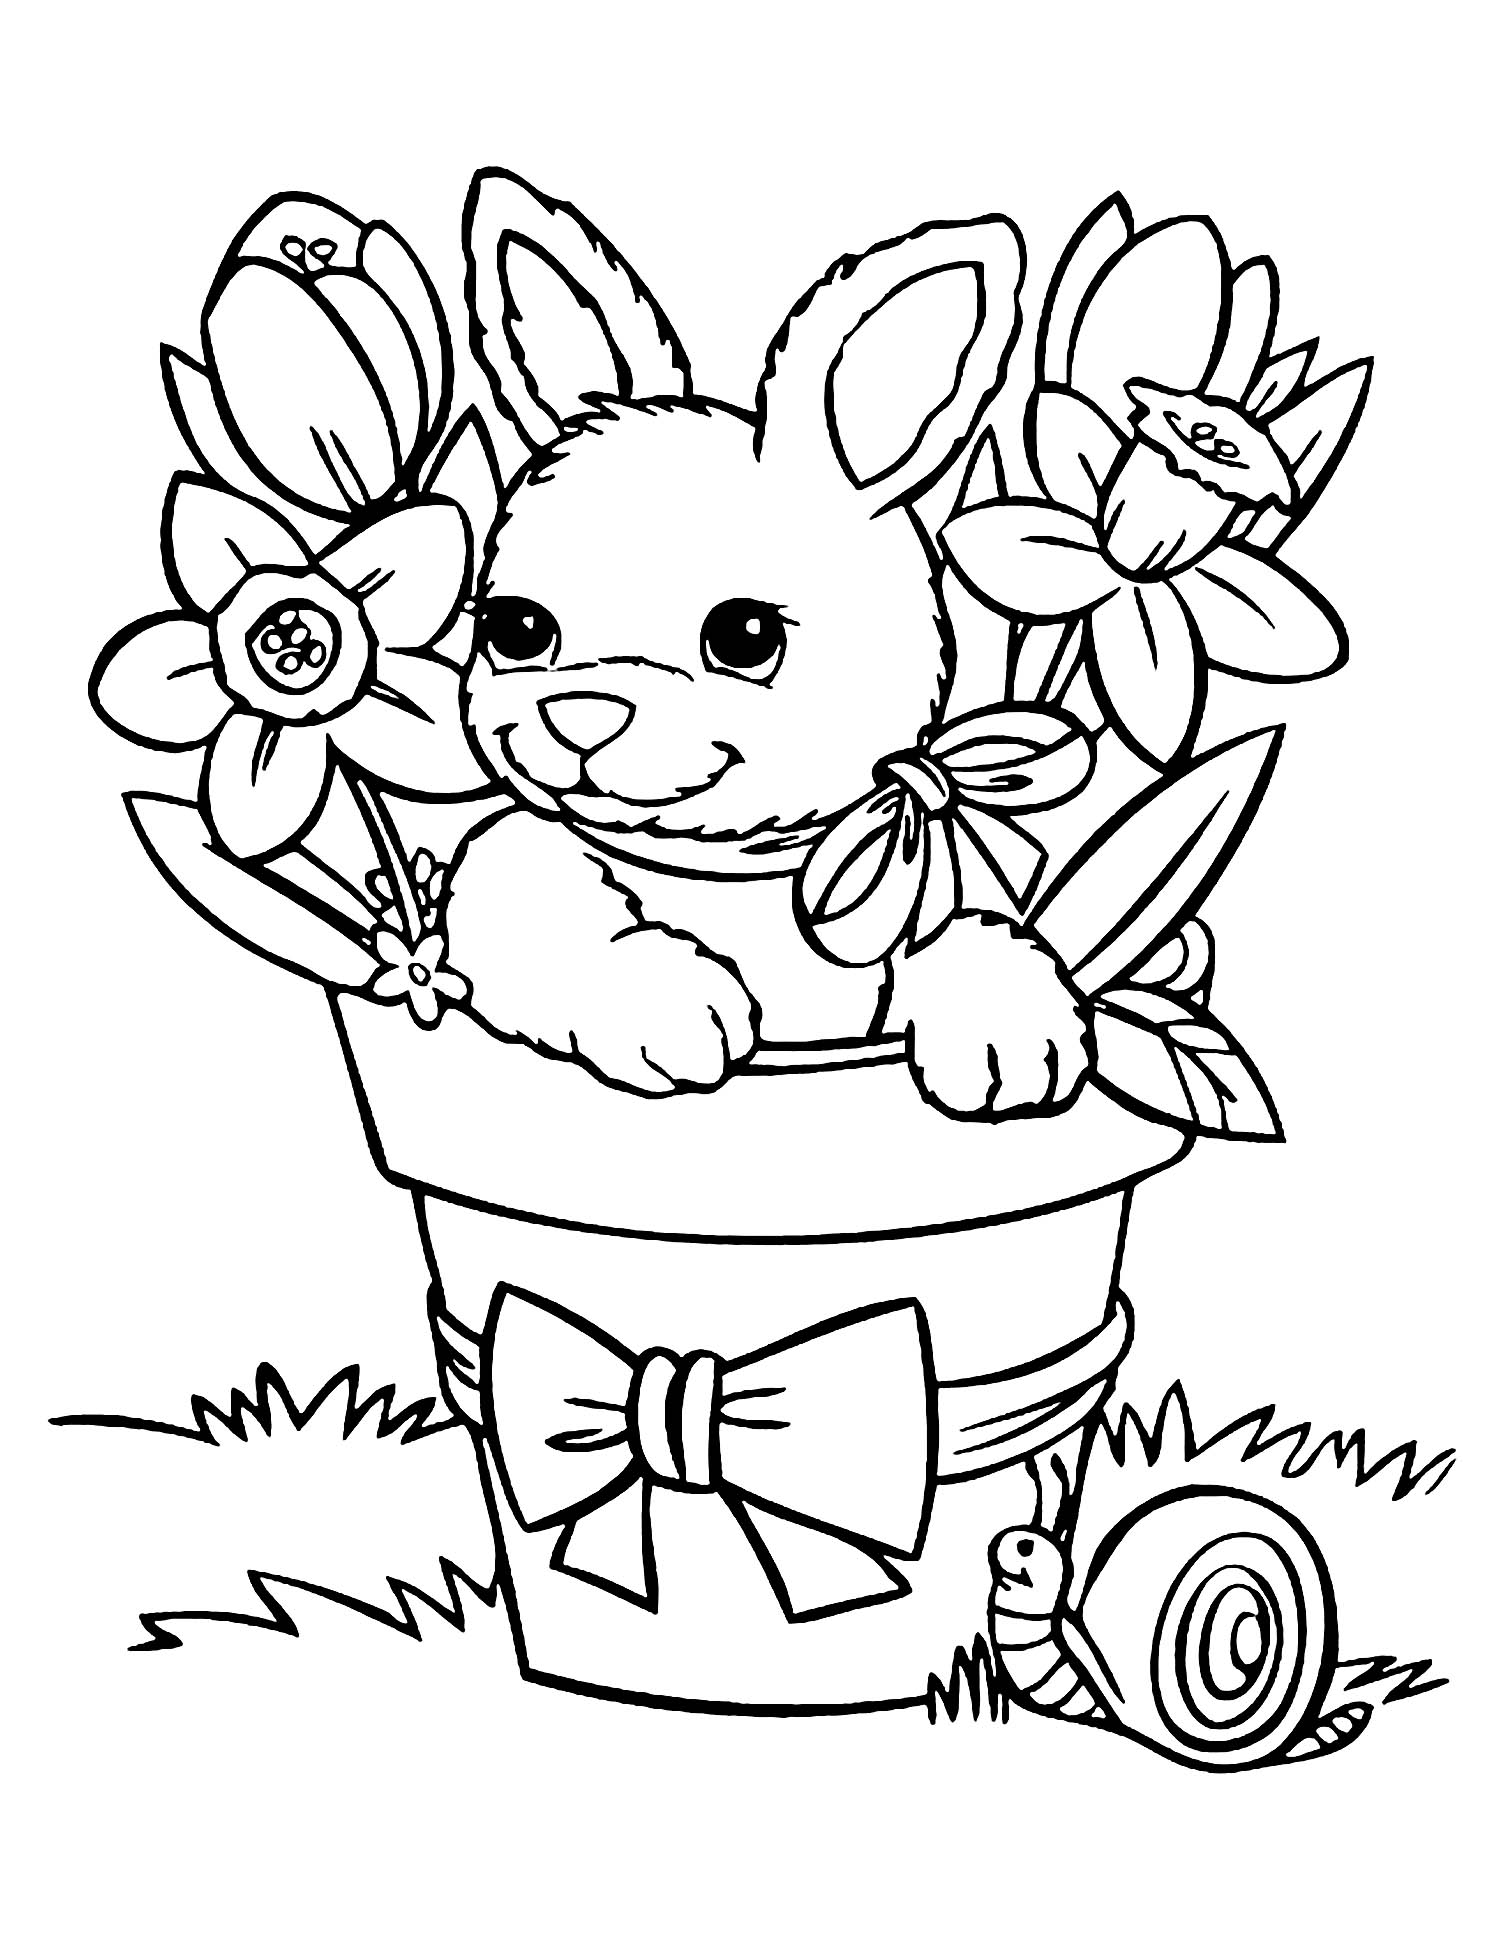 coloring bunnies rabbit to print for free rabbit kids coloring pages coloring bunnies